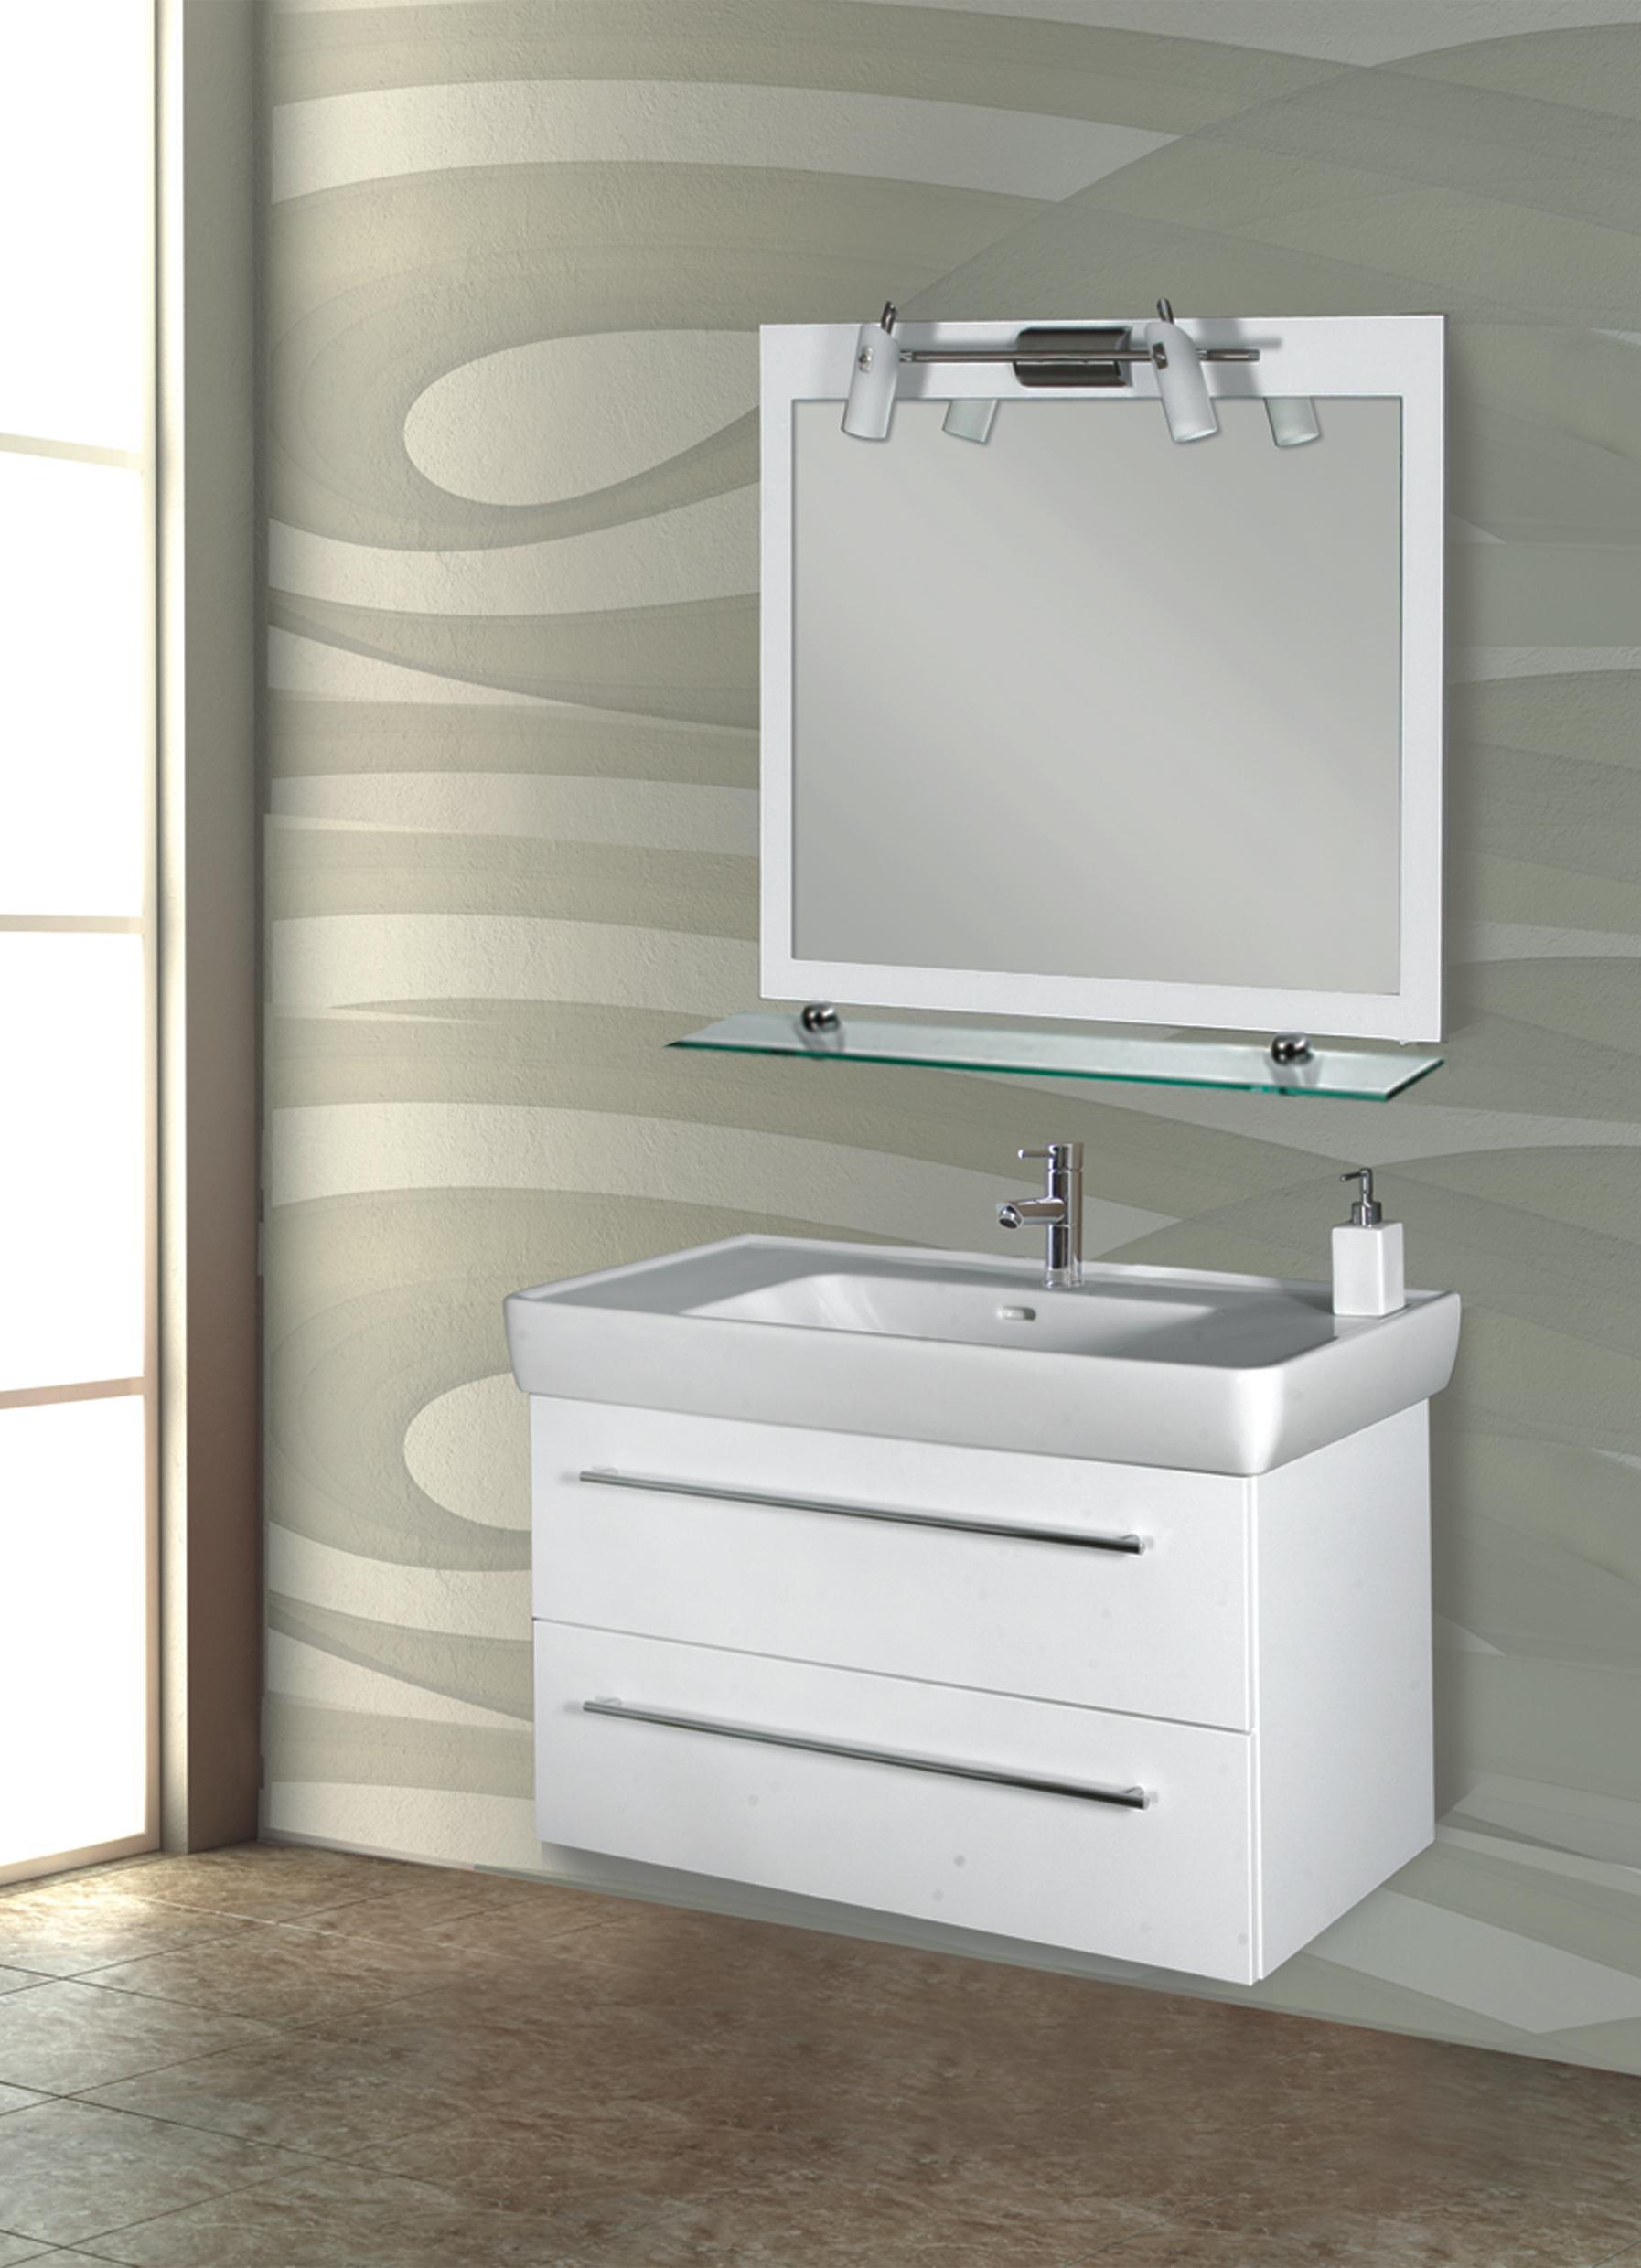 Mobili Bagno Design Outlet. Top Bagno Puntotre Linea Rovere Weng A Prezzo Outlet With Mobili ...